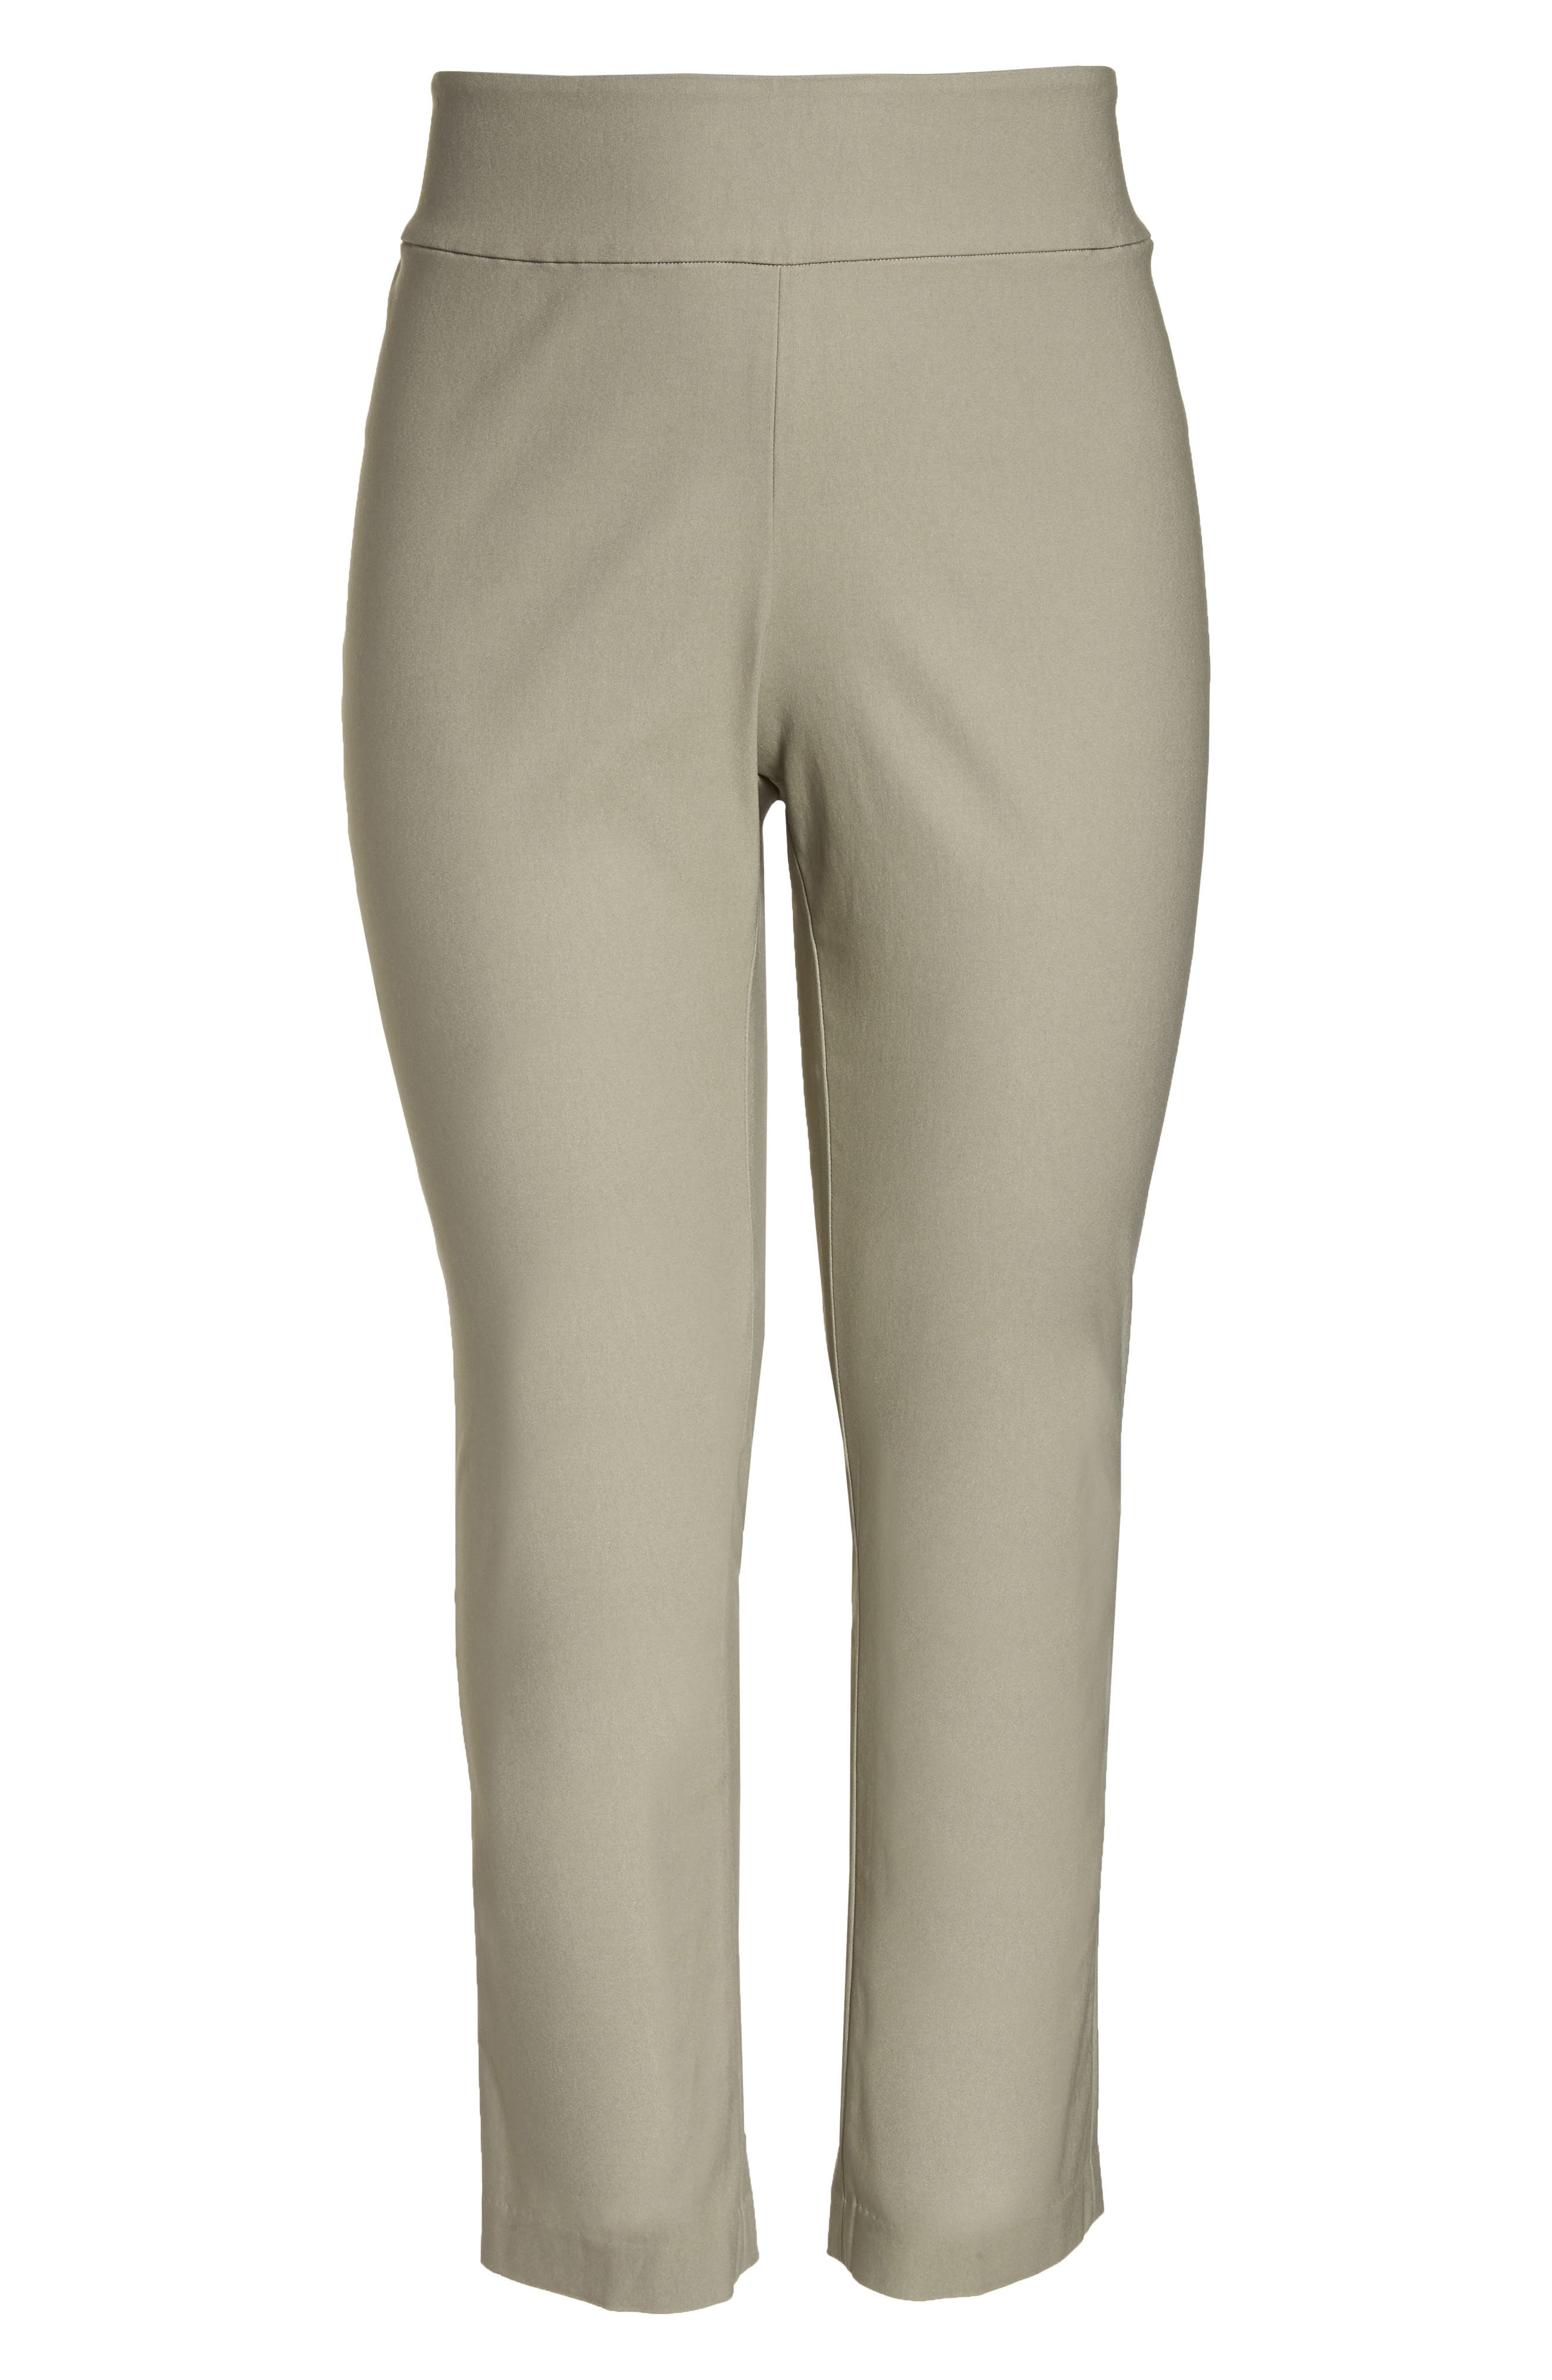 Wonderstretch High Rise Pants,                             Alternate thumbnail 7, color,                             251